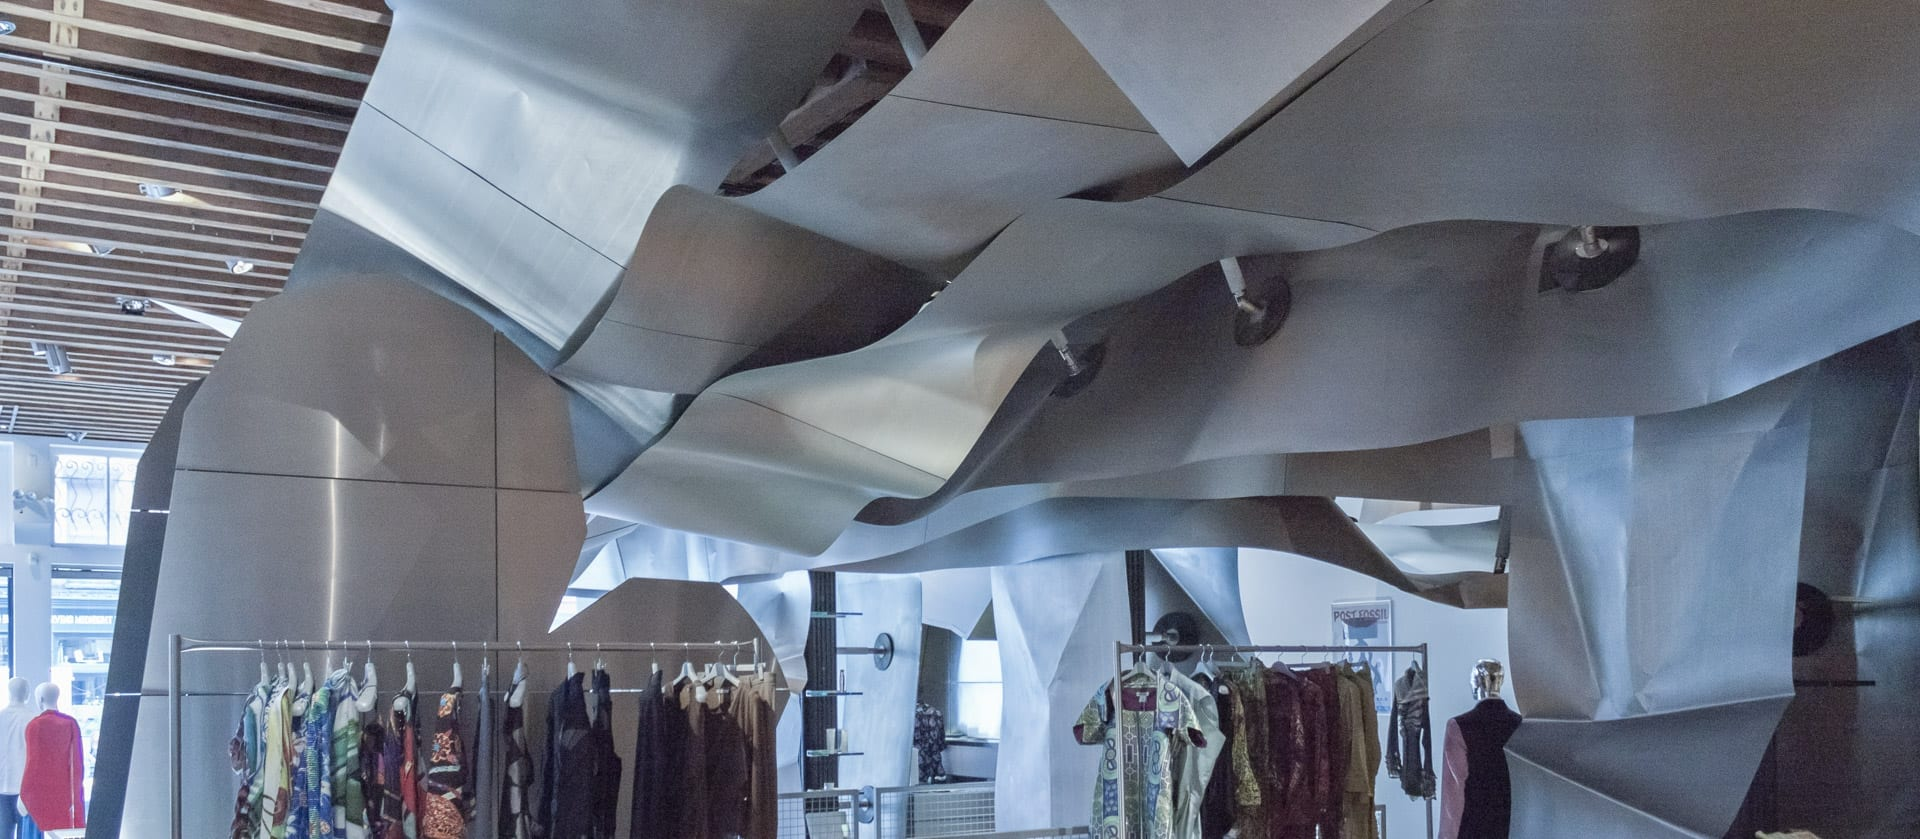 Curving titanium drop ceiling at Issey Miyake Tribeca.